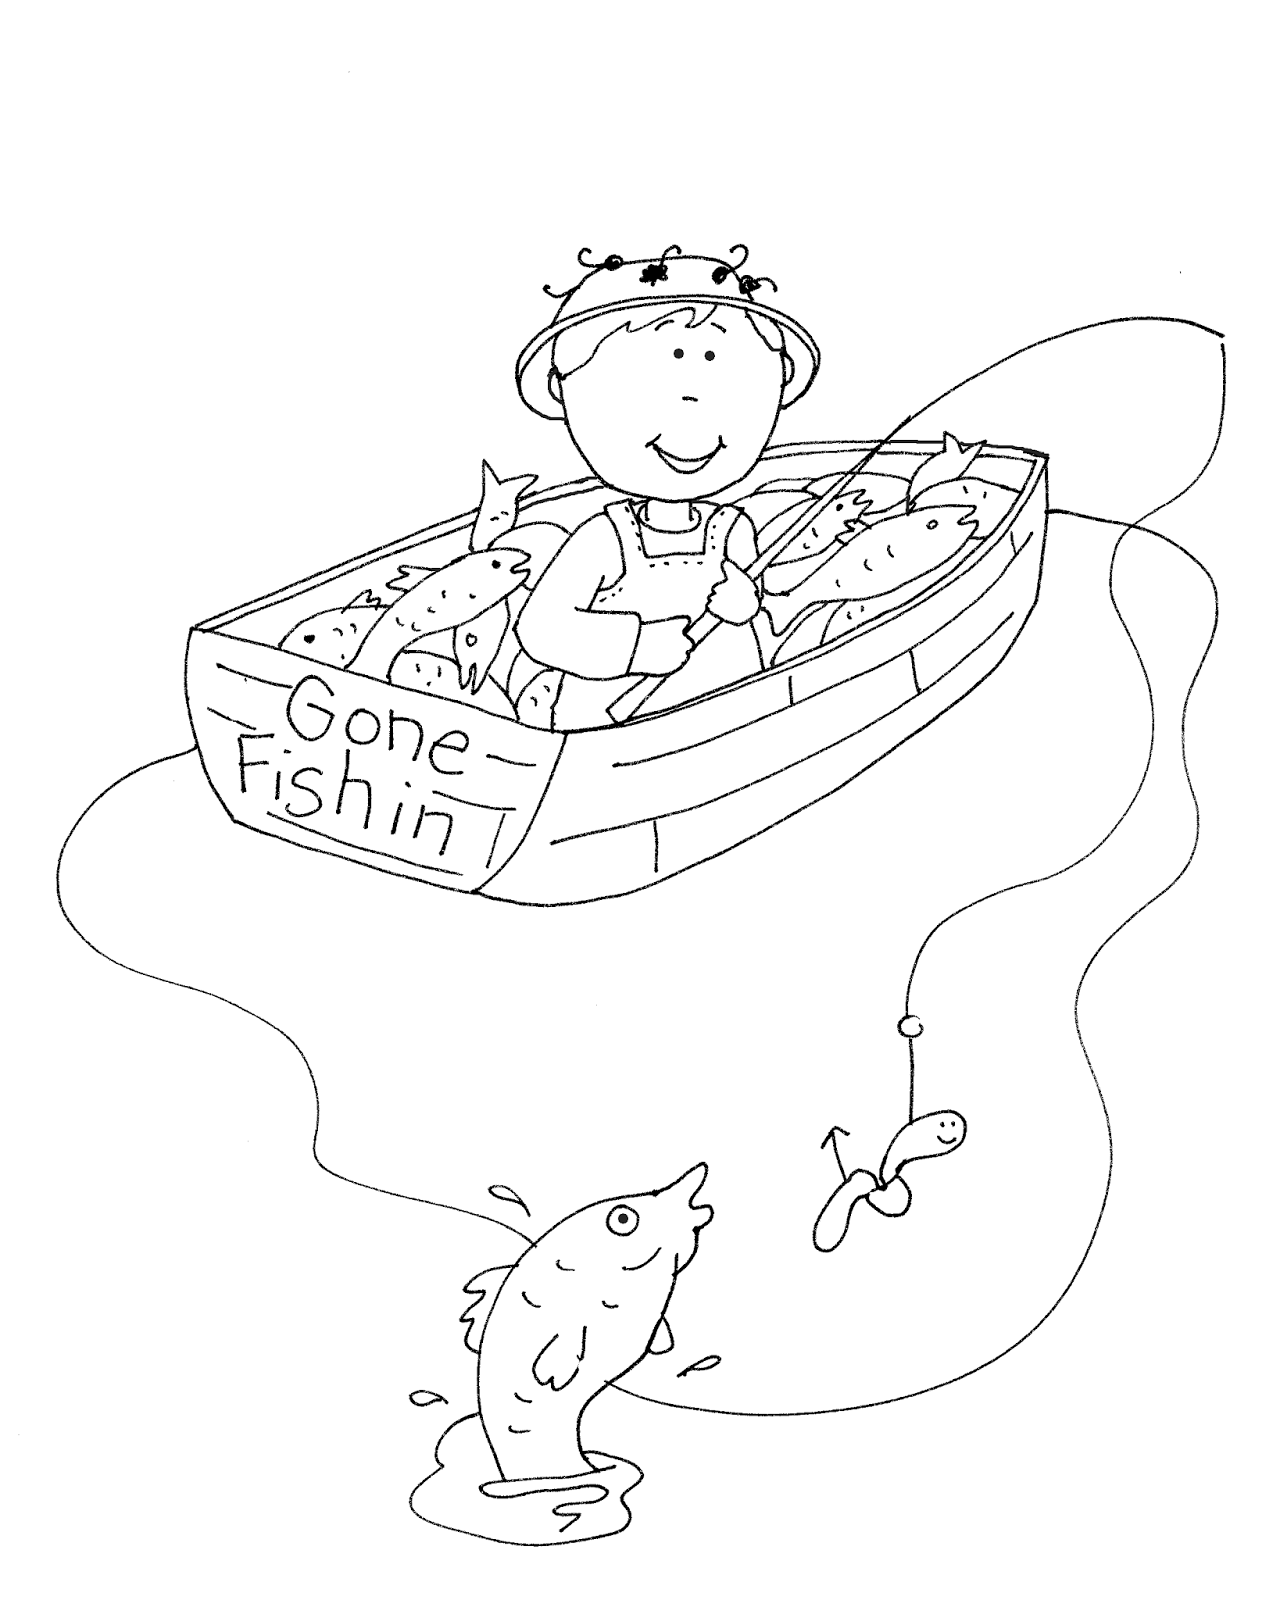 Gone Fishin Png 1273 1600 Fathers Day Coloring Page Digi Stamps Digital Stamps Free